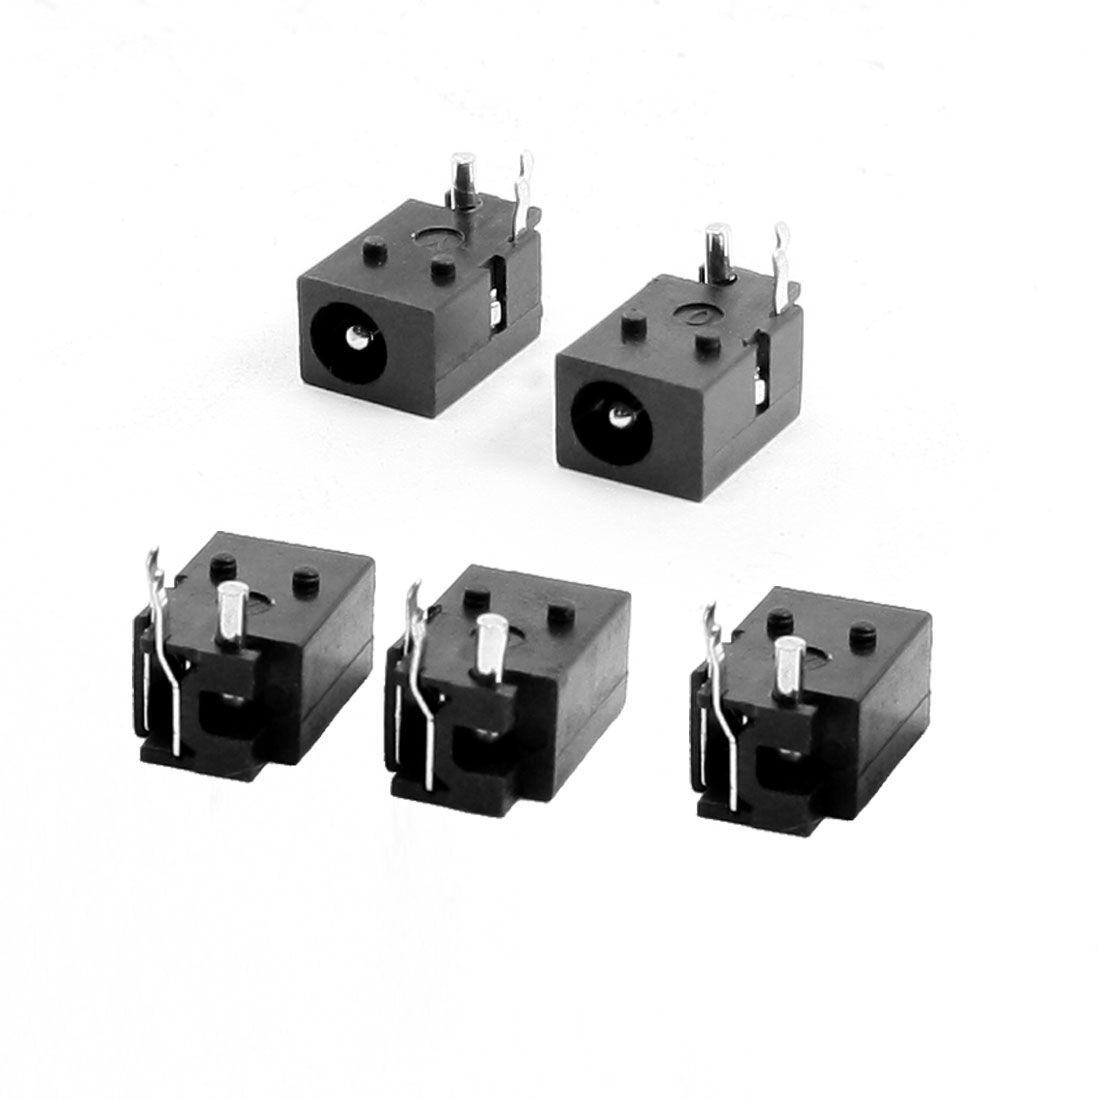 5 Pcs 3-Pole PCB Mount 3.5x1.5mm Stereo Jacks Socket Audio Connectors